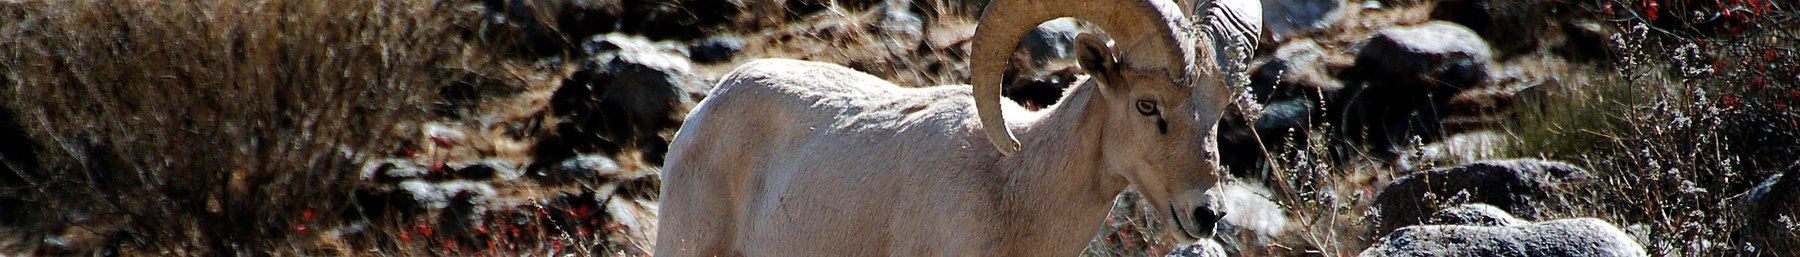 Big Horn Sheep, a resident of this region of Arizona.